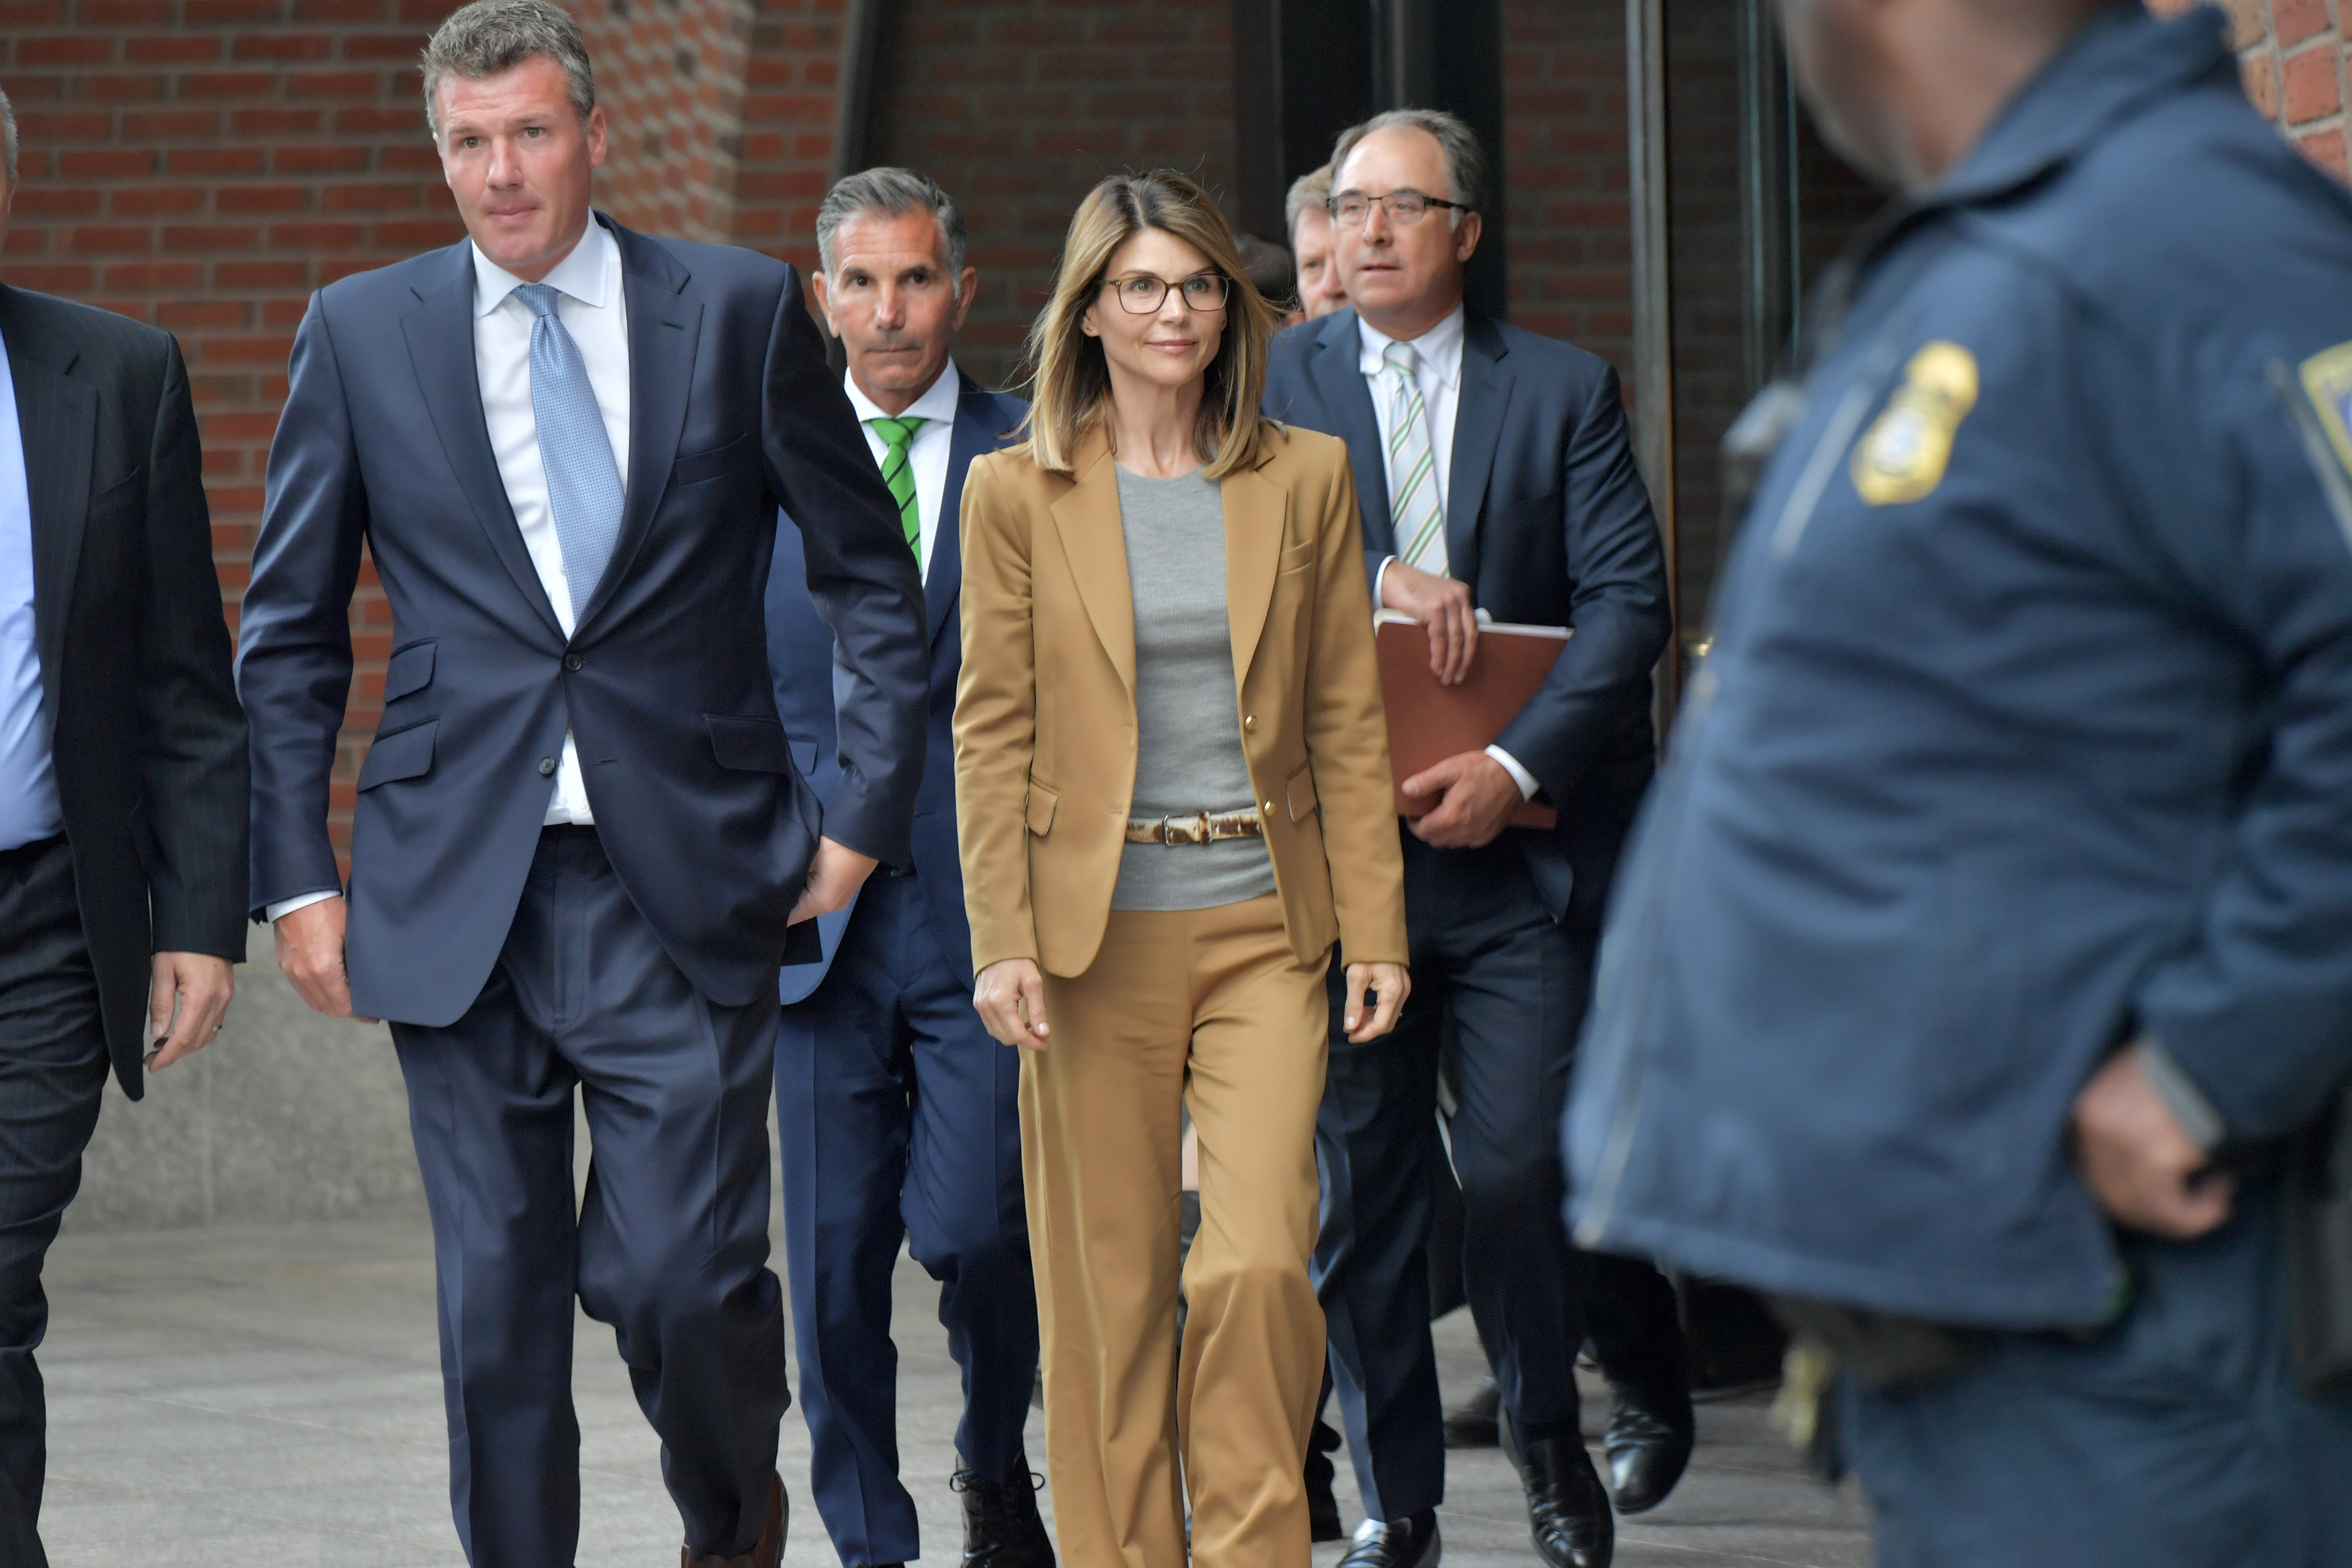 Lori Loughlin leaving the John Joseph Moakley U.S. Courthouse in Boston, Massachusetts | Photo: Getty Images